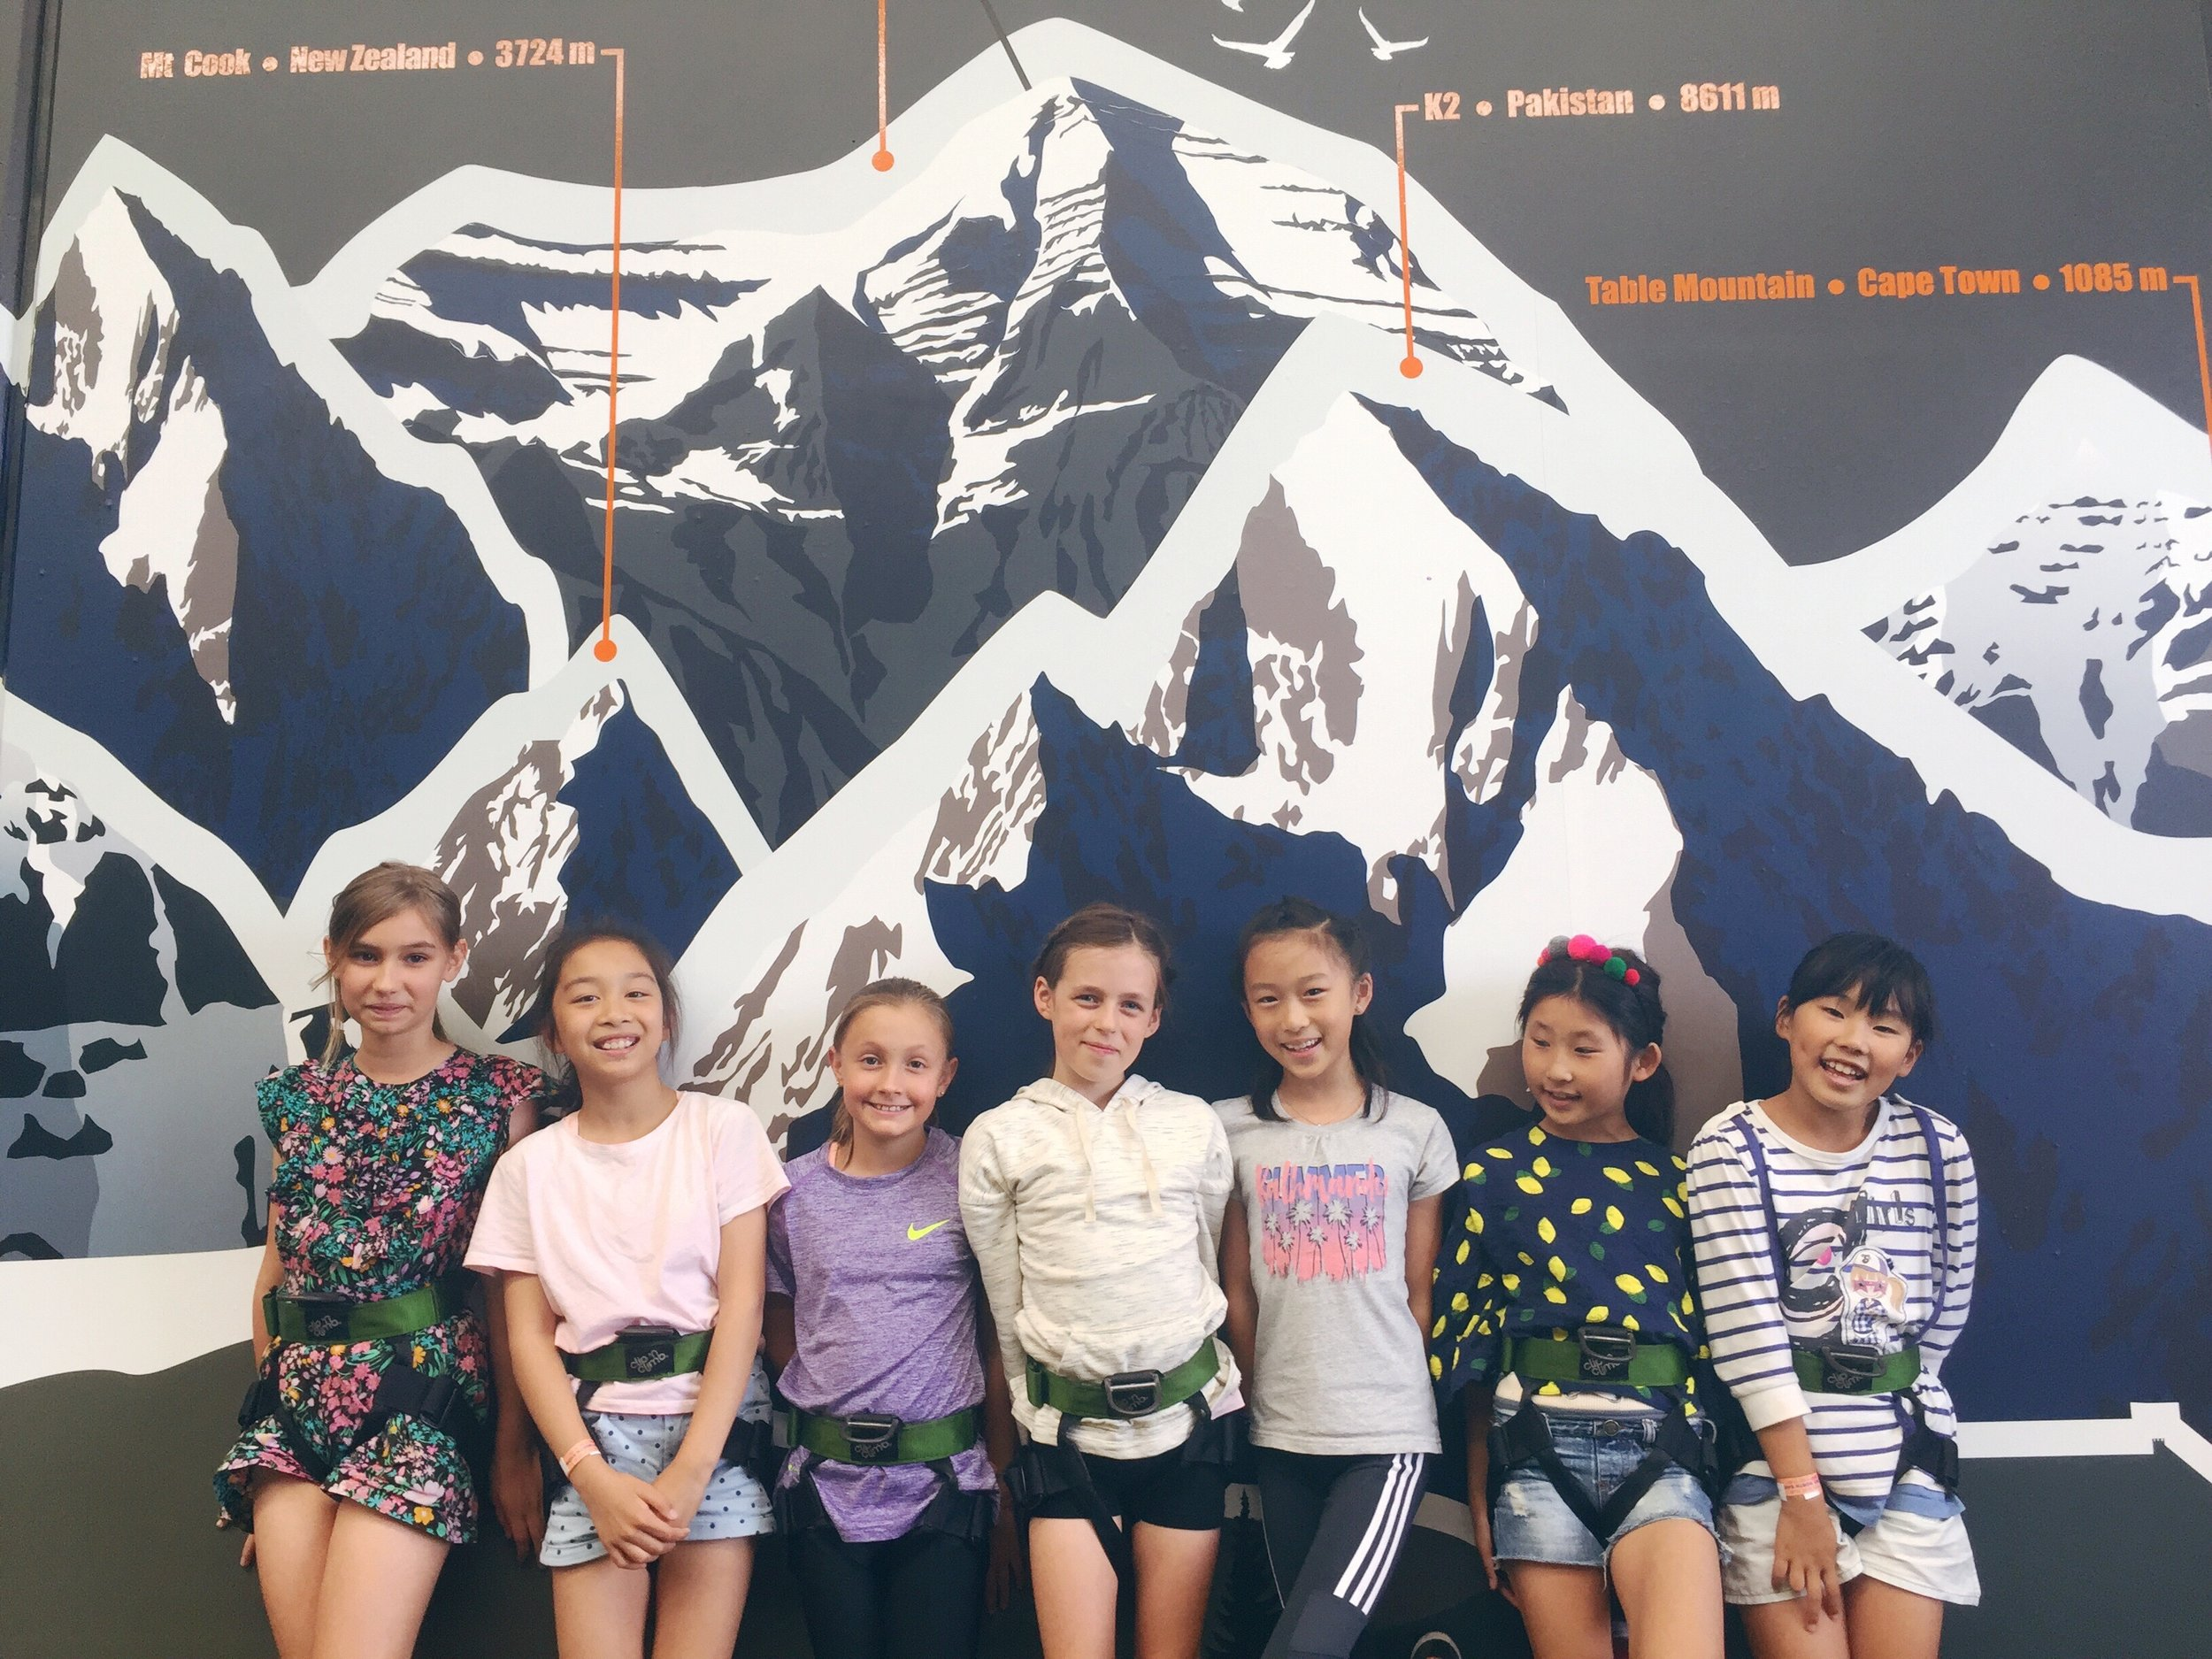 Lane's (early) 10th birthday party with her NZ friends.